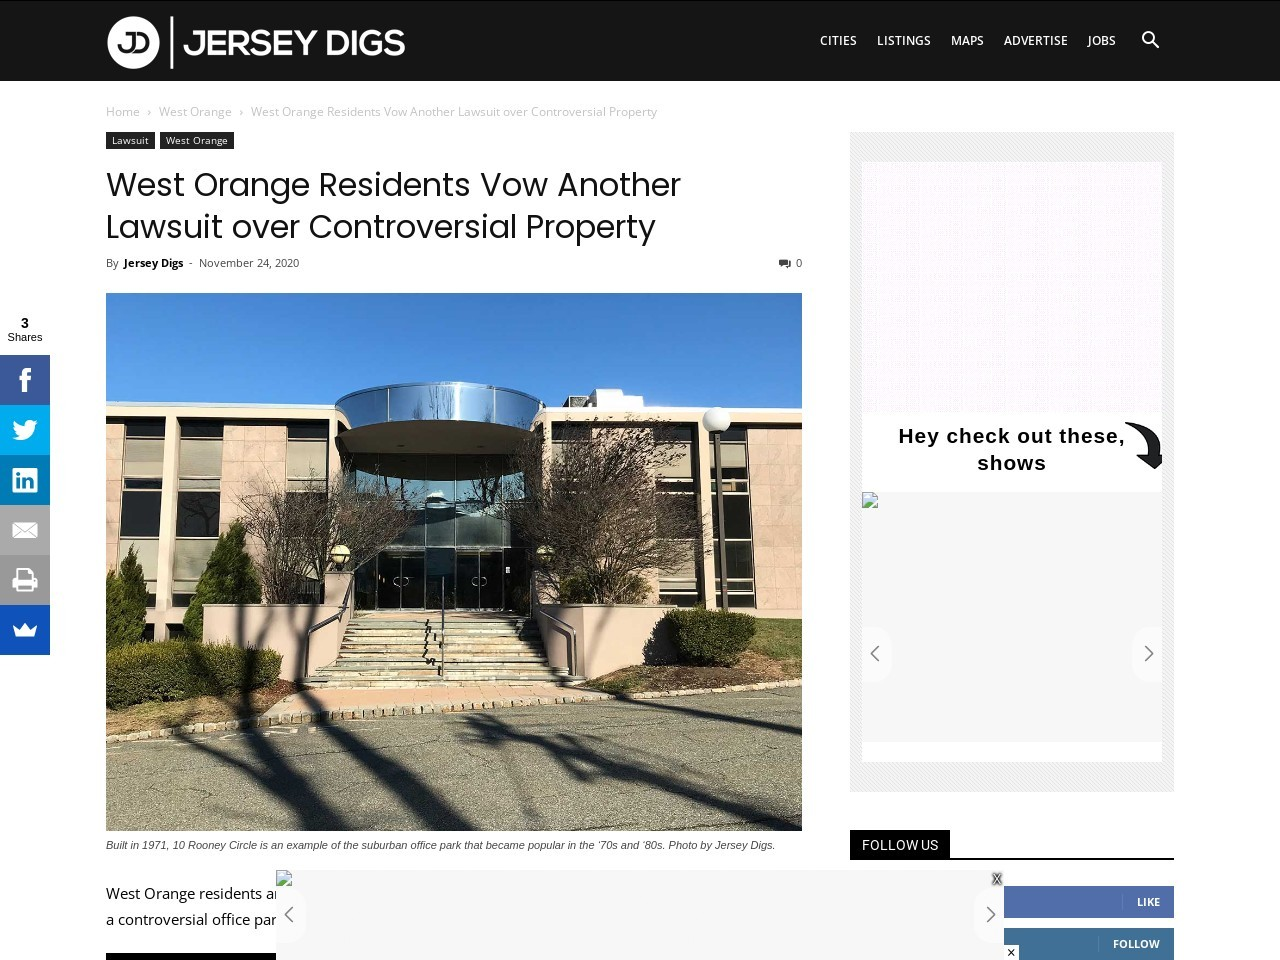 West Orange Residents Vow Another Lawsuit over Controversial Property